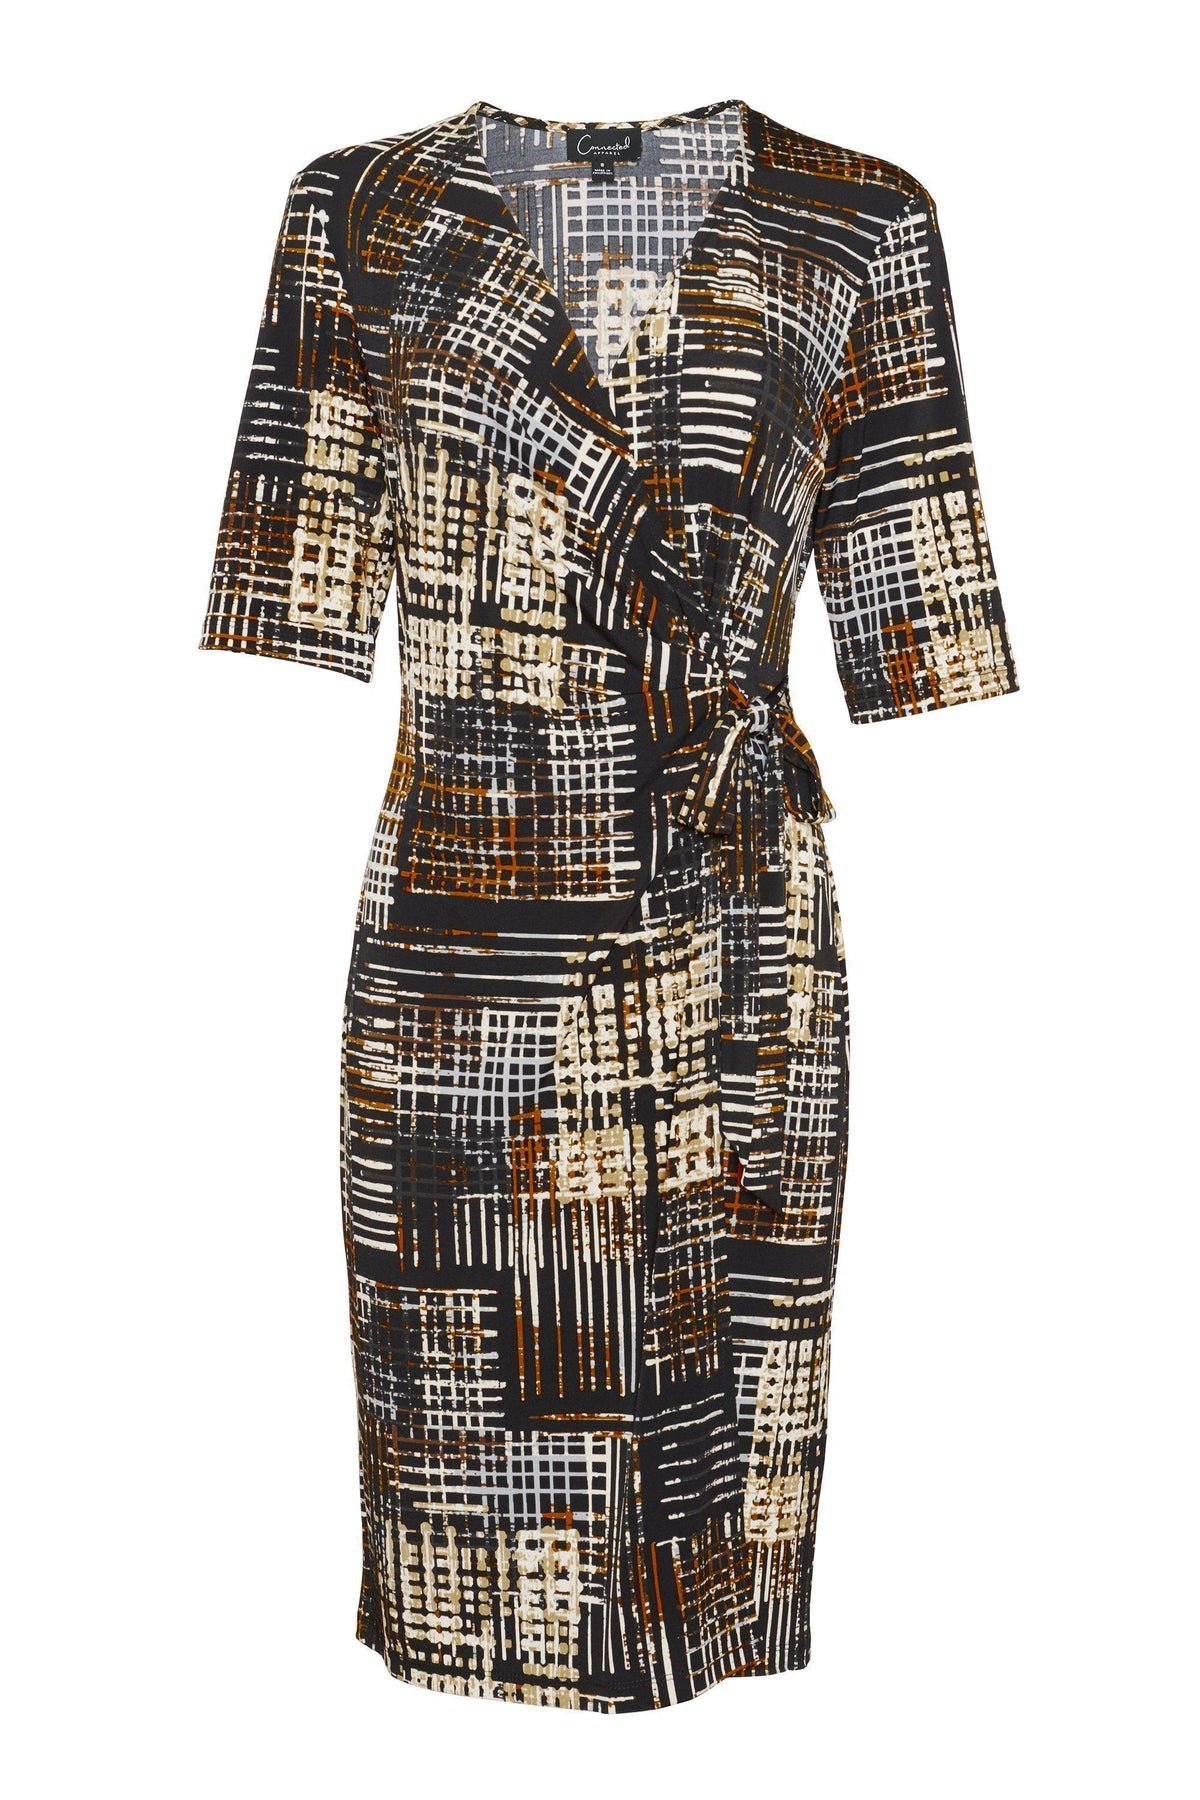 Woman posing wearing - Diane Abstract Print Knee Length Wrap Dress from Connected Apparel